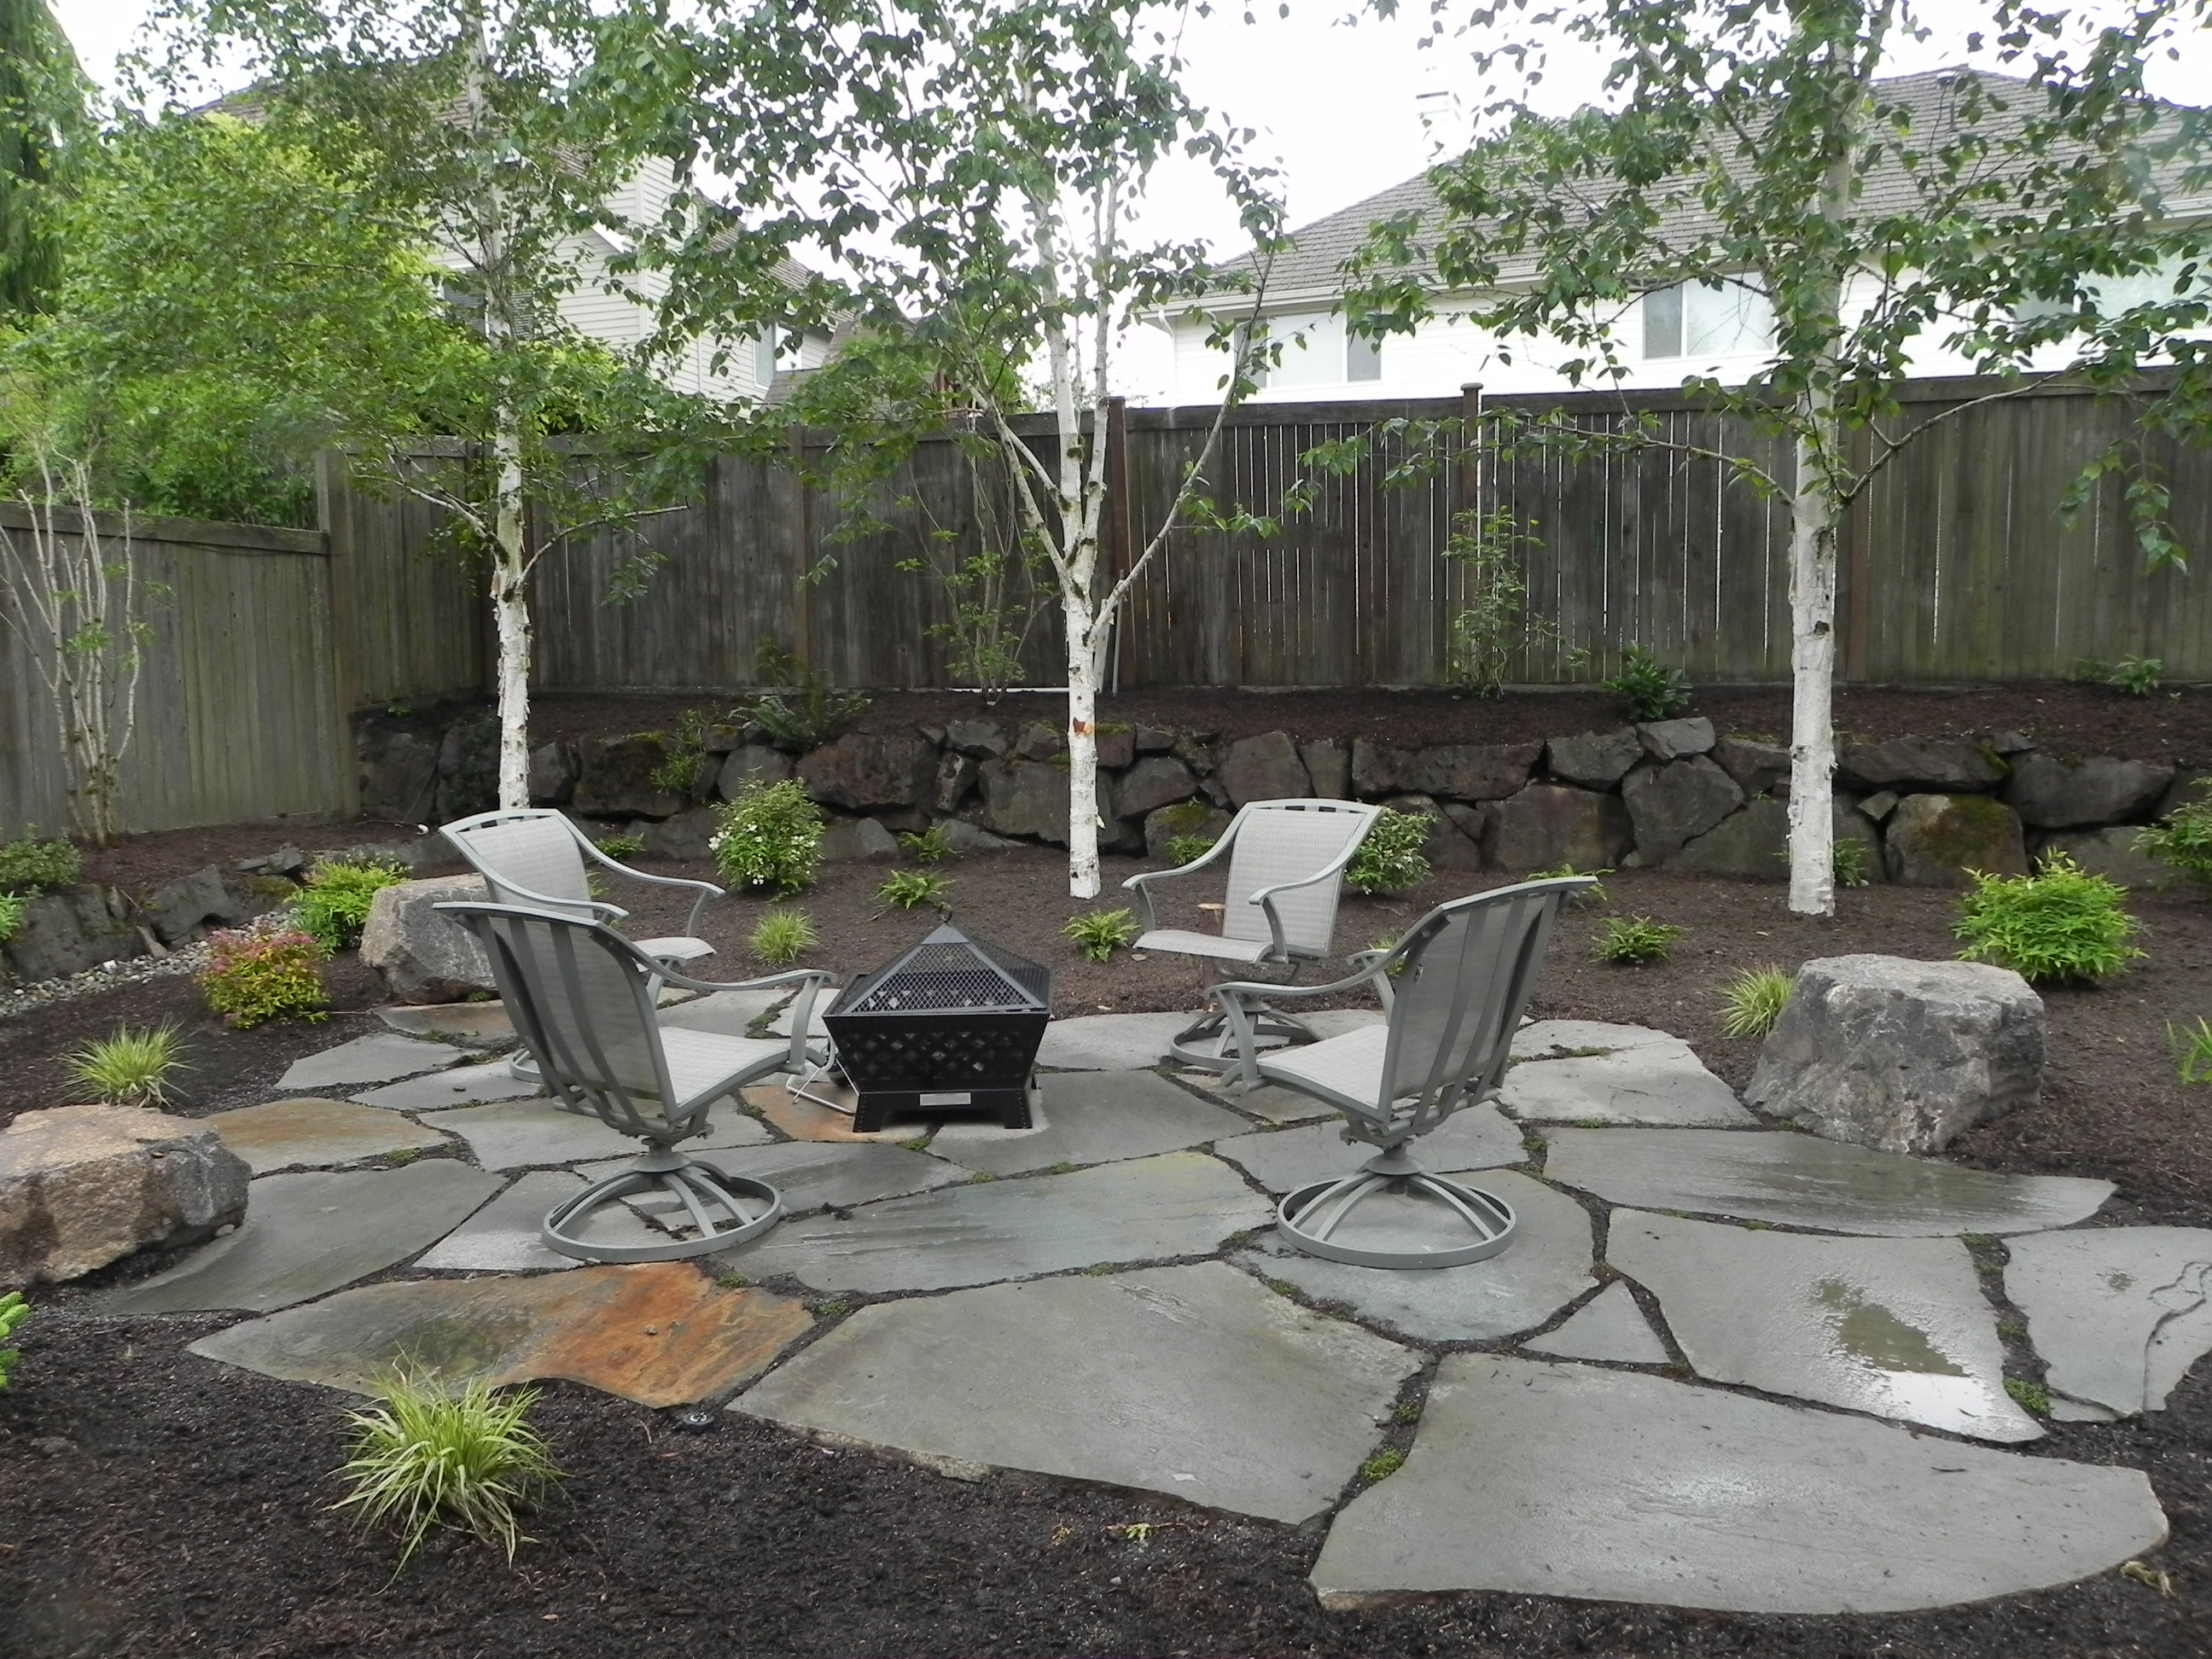 Inspirational Fire Pit Landscape Ideas Backyard Patios And Pits intended for 14 Genius Designs of How to Improve Backyard With Fire Pit Landscaping Ideas